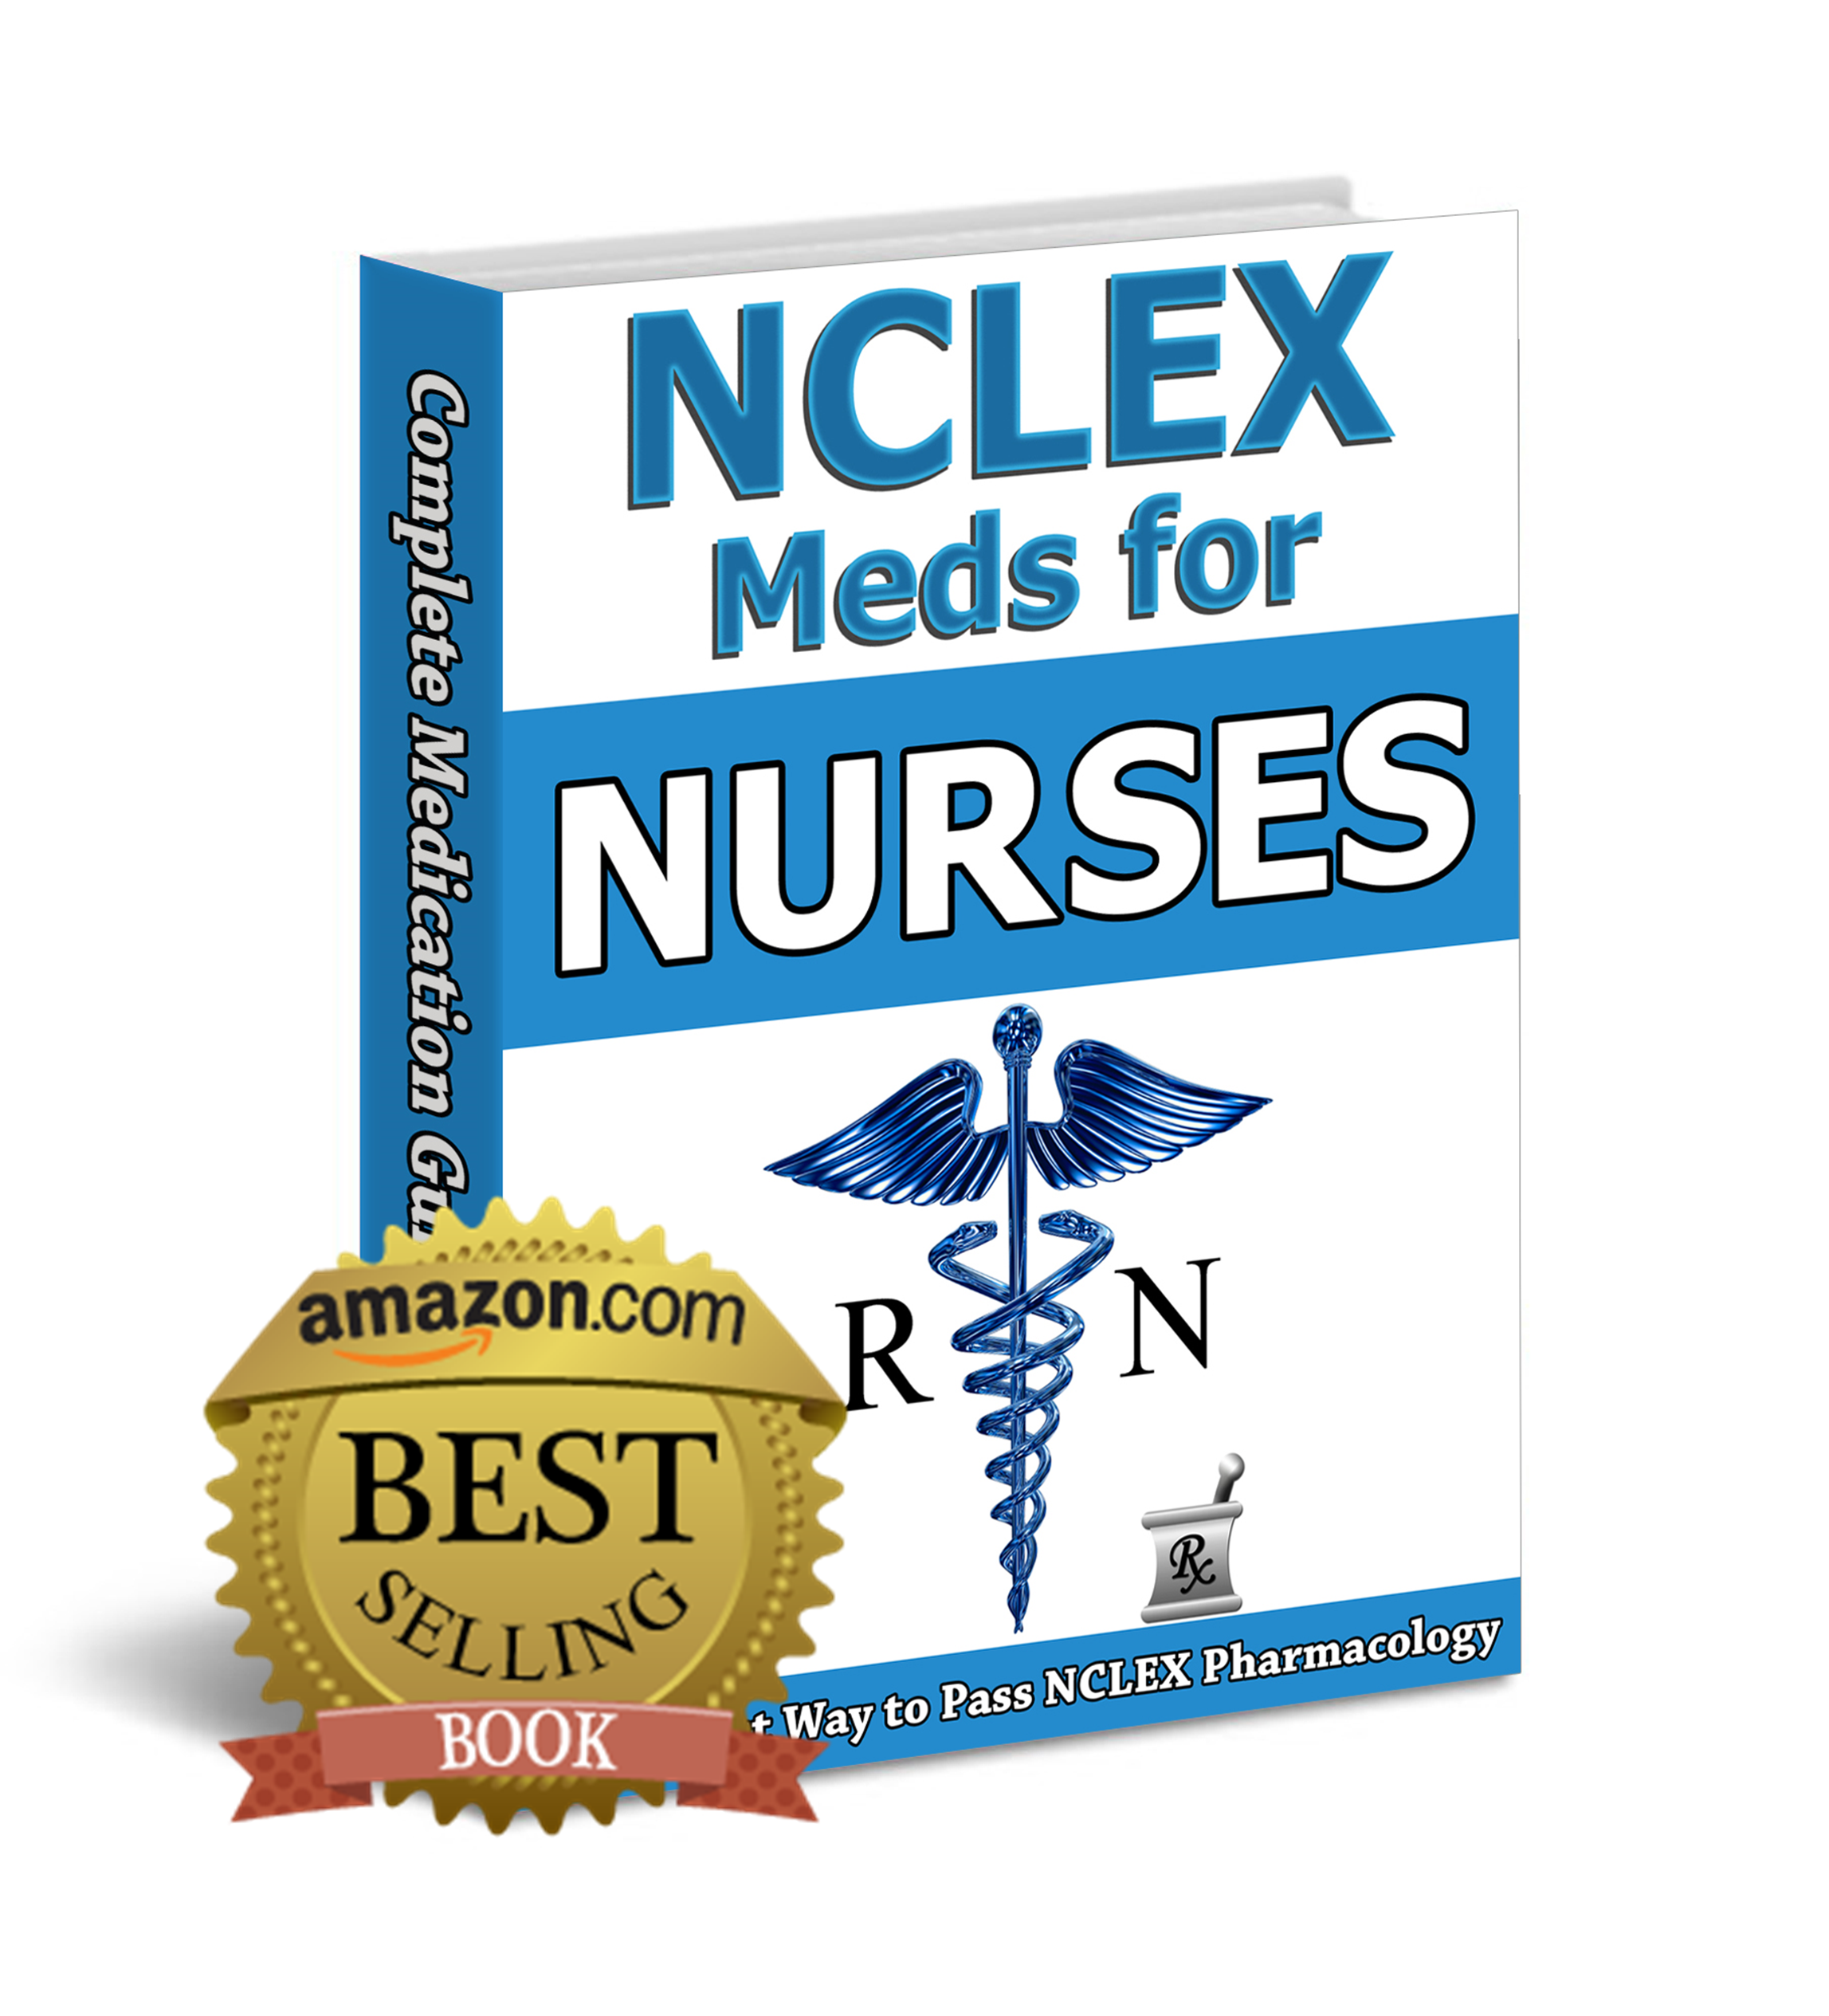 Top Meds on NCLEX